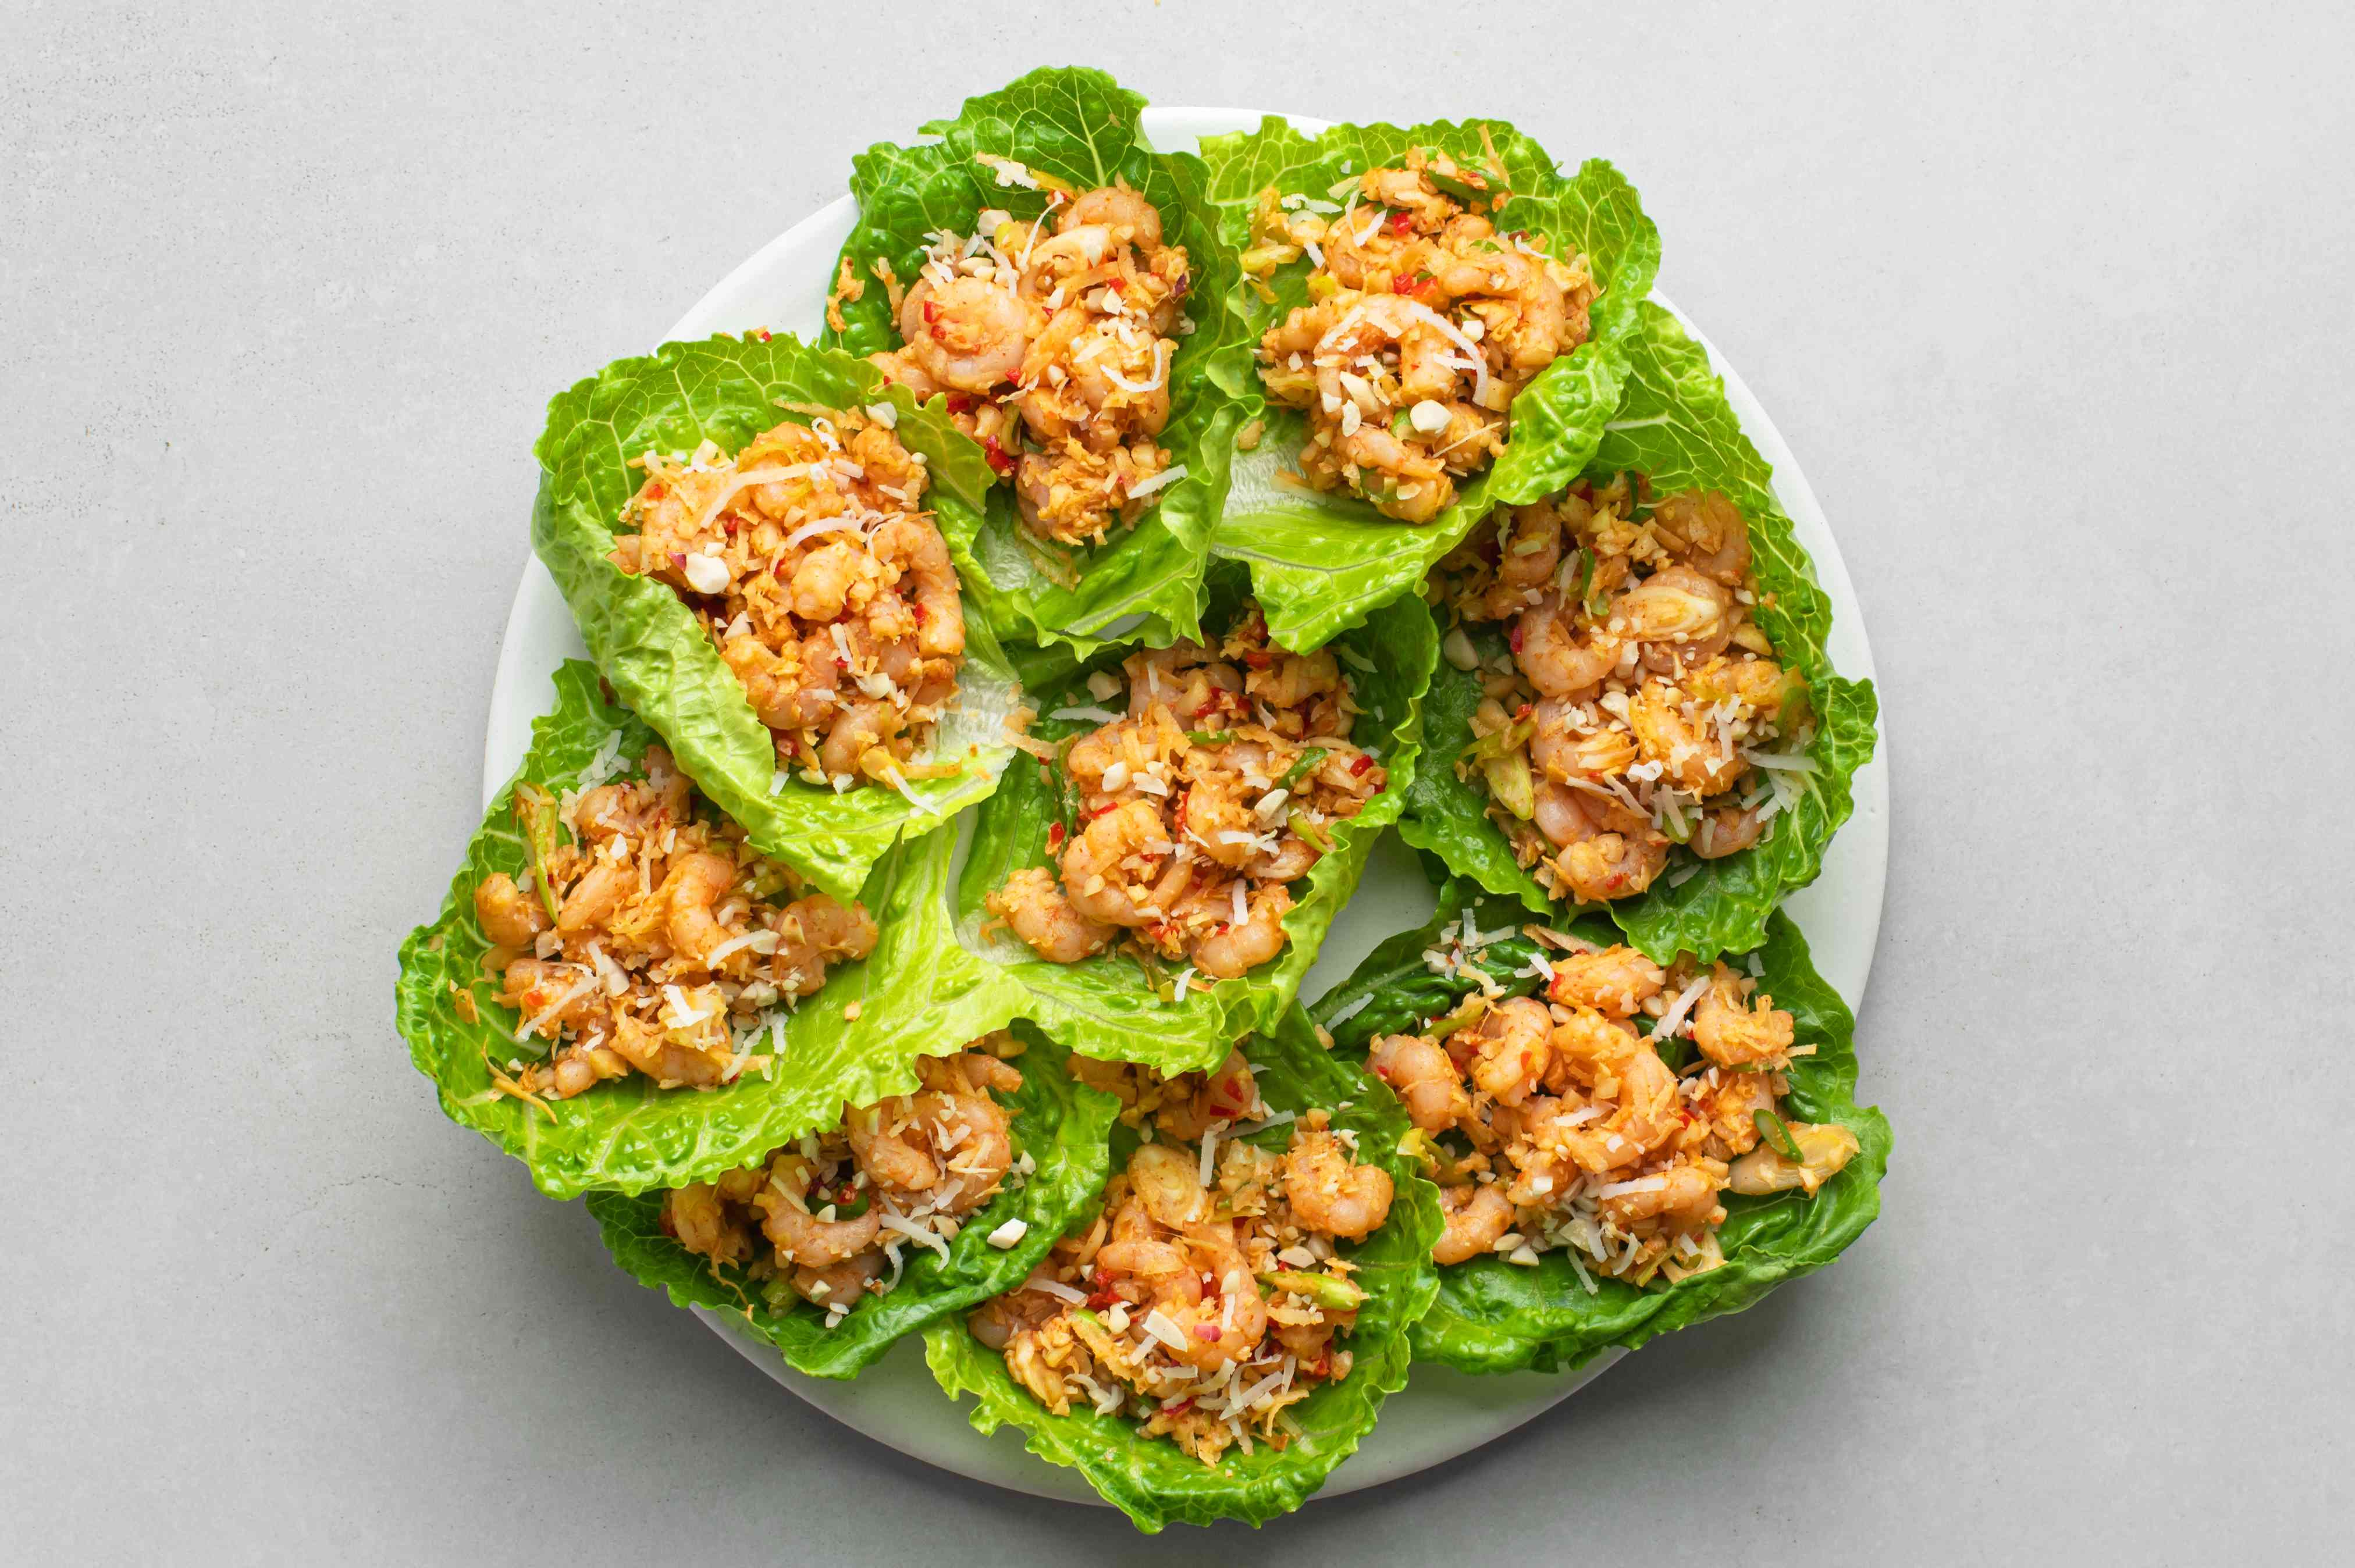 romaine lettuce leaves with shrimp mixture and coconut on top